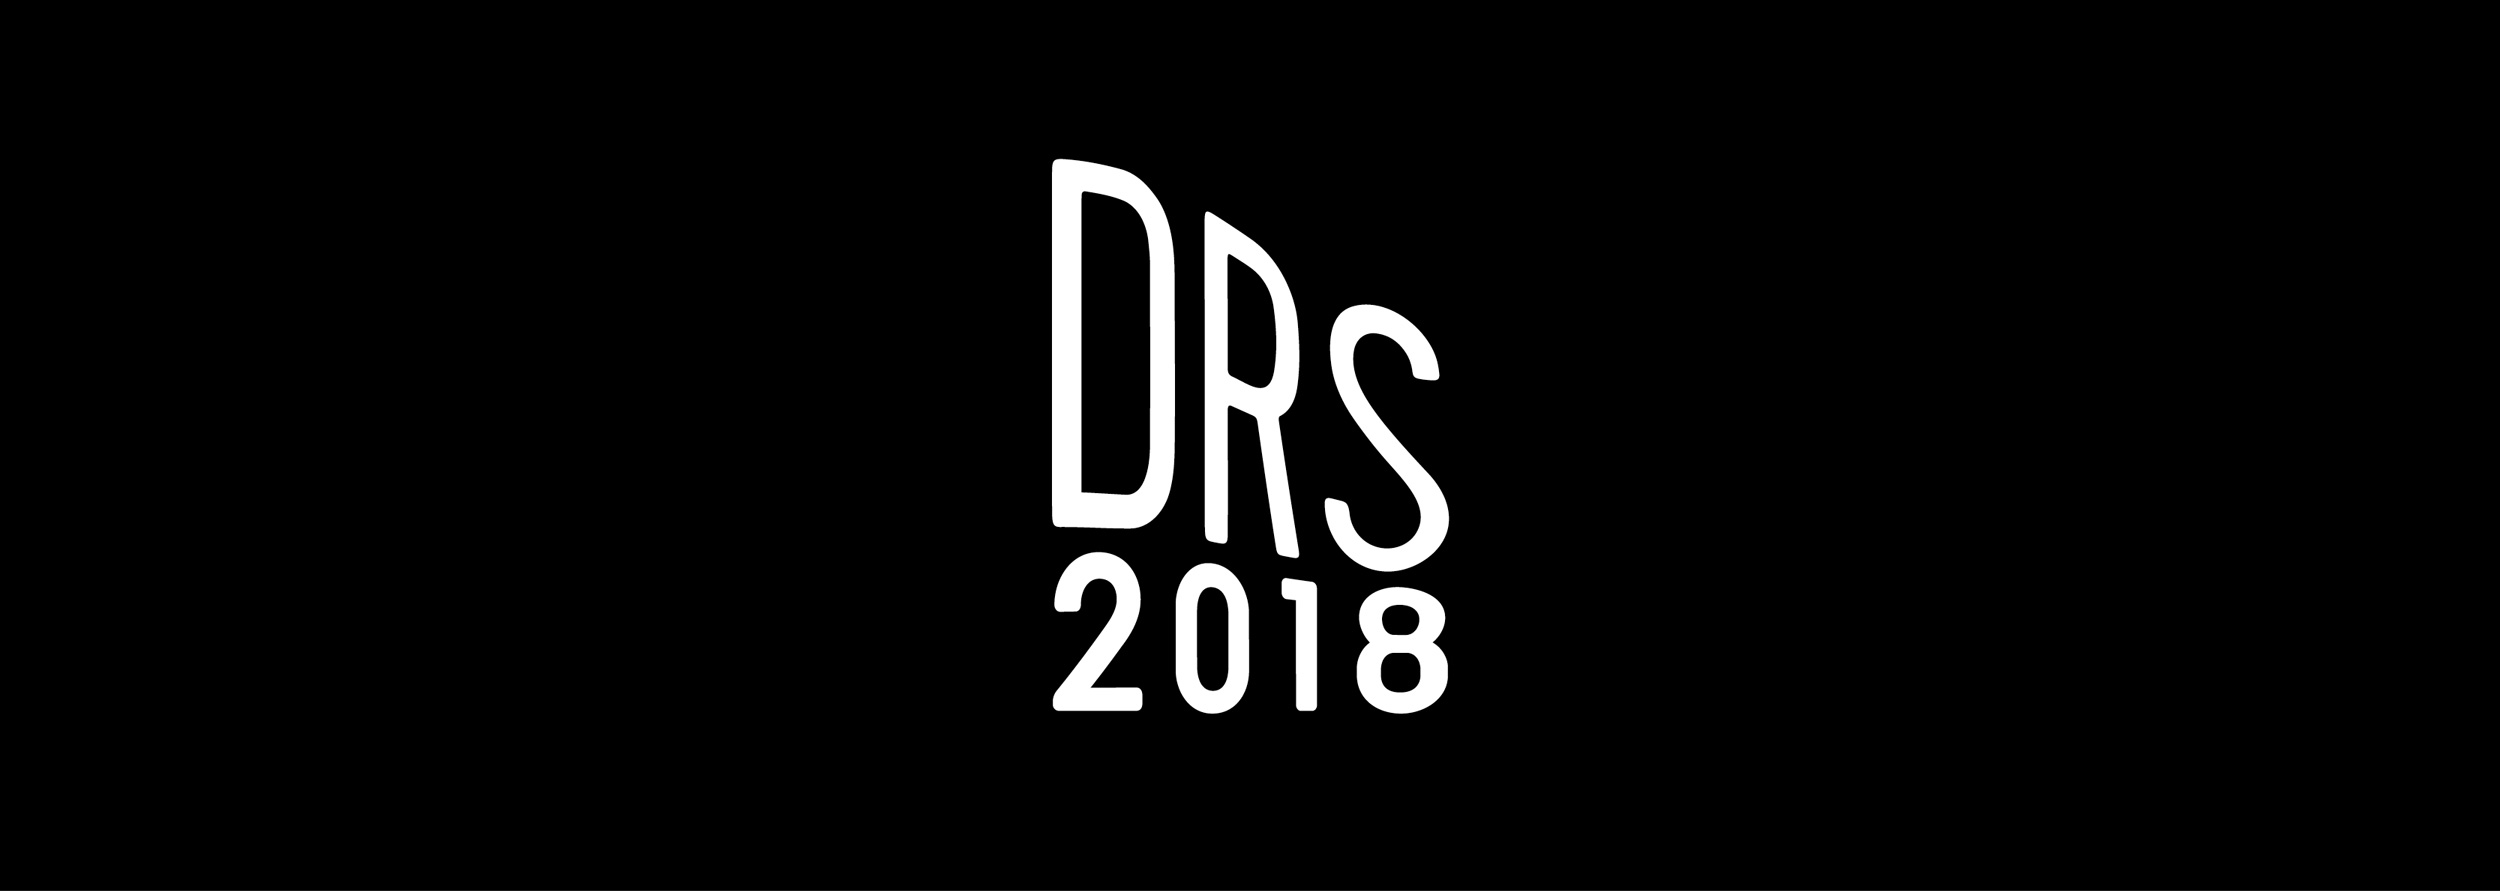 DRS2018 Brand Design Brand Development